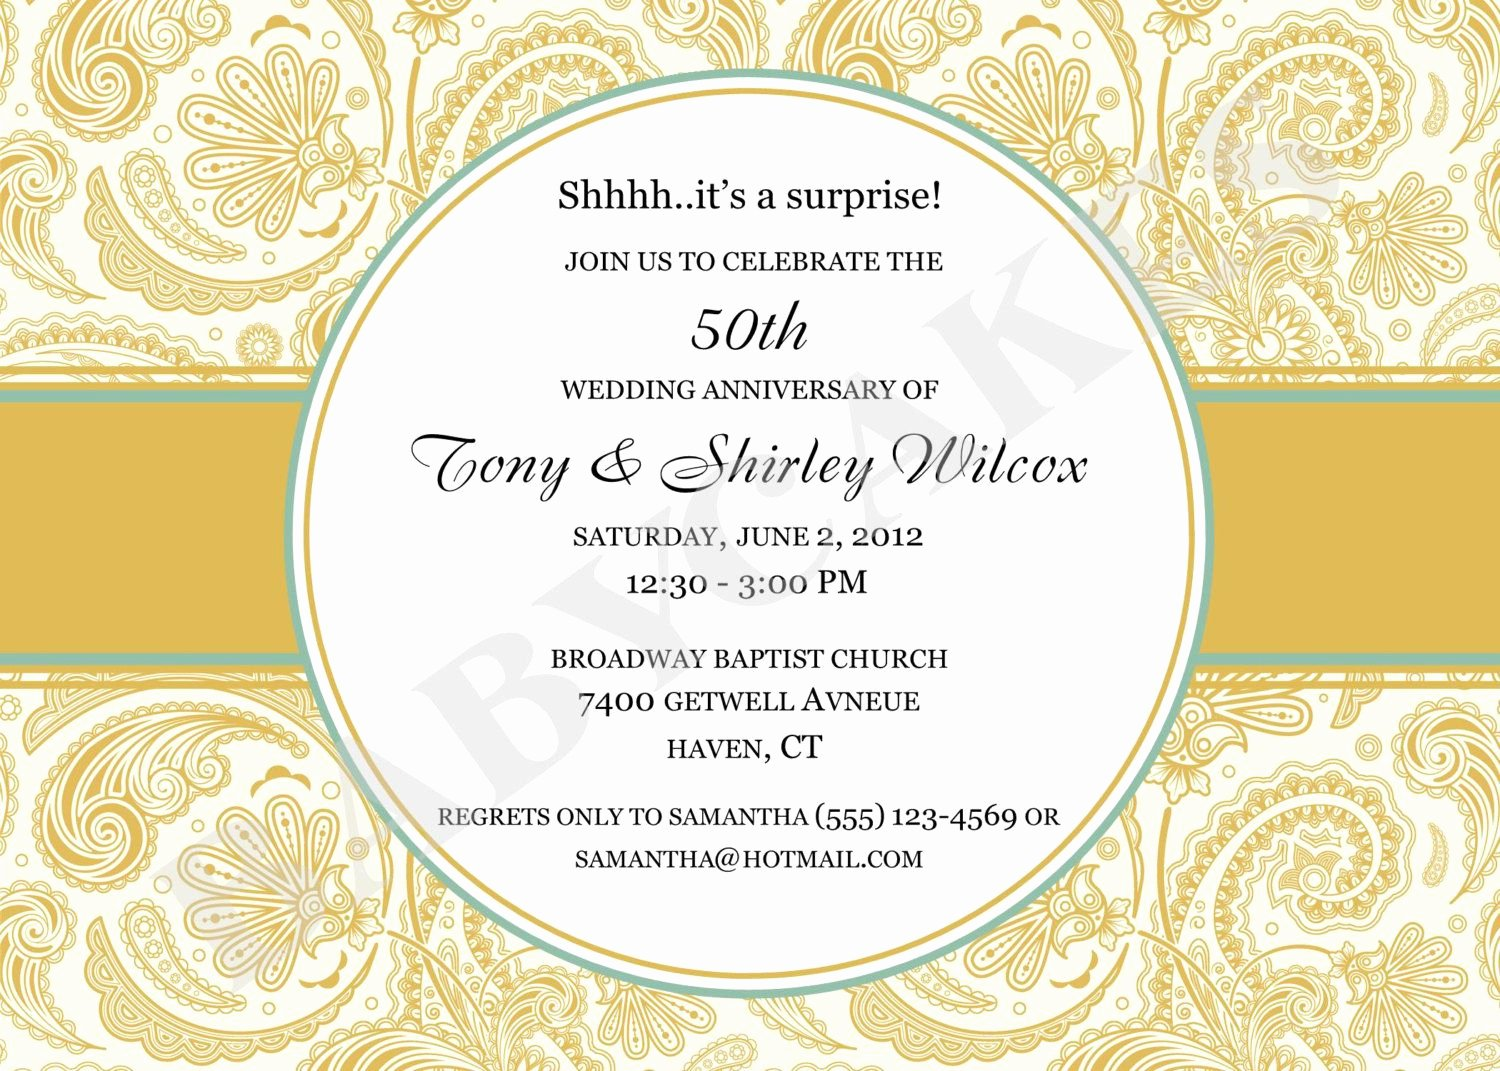 50th Anniversary Invitations Templates Awesome 50 Wedding Anniversary Invitation 50th Wedding Anniversary Invitations Invite Card Ideas